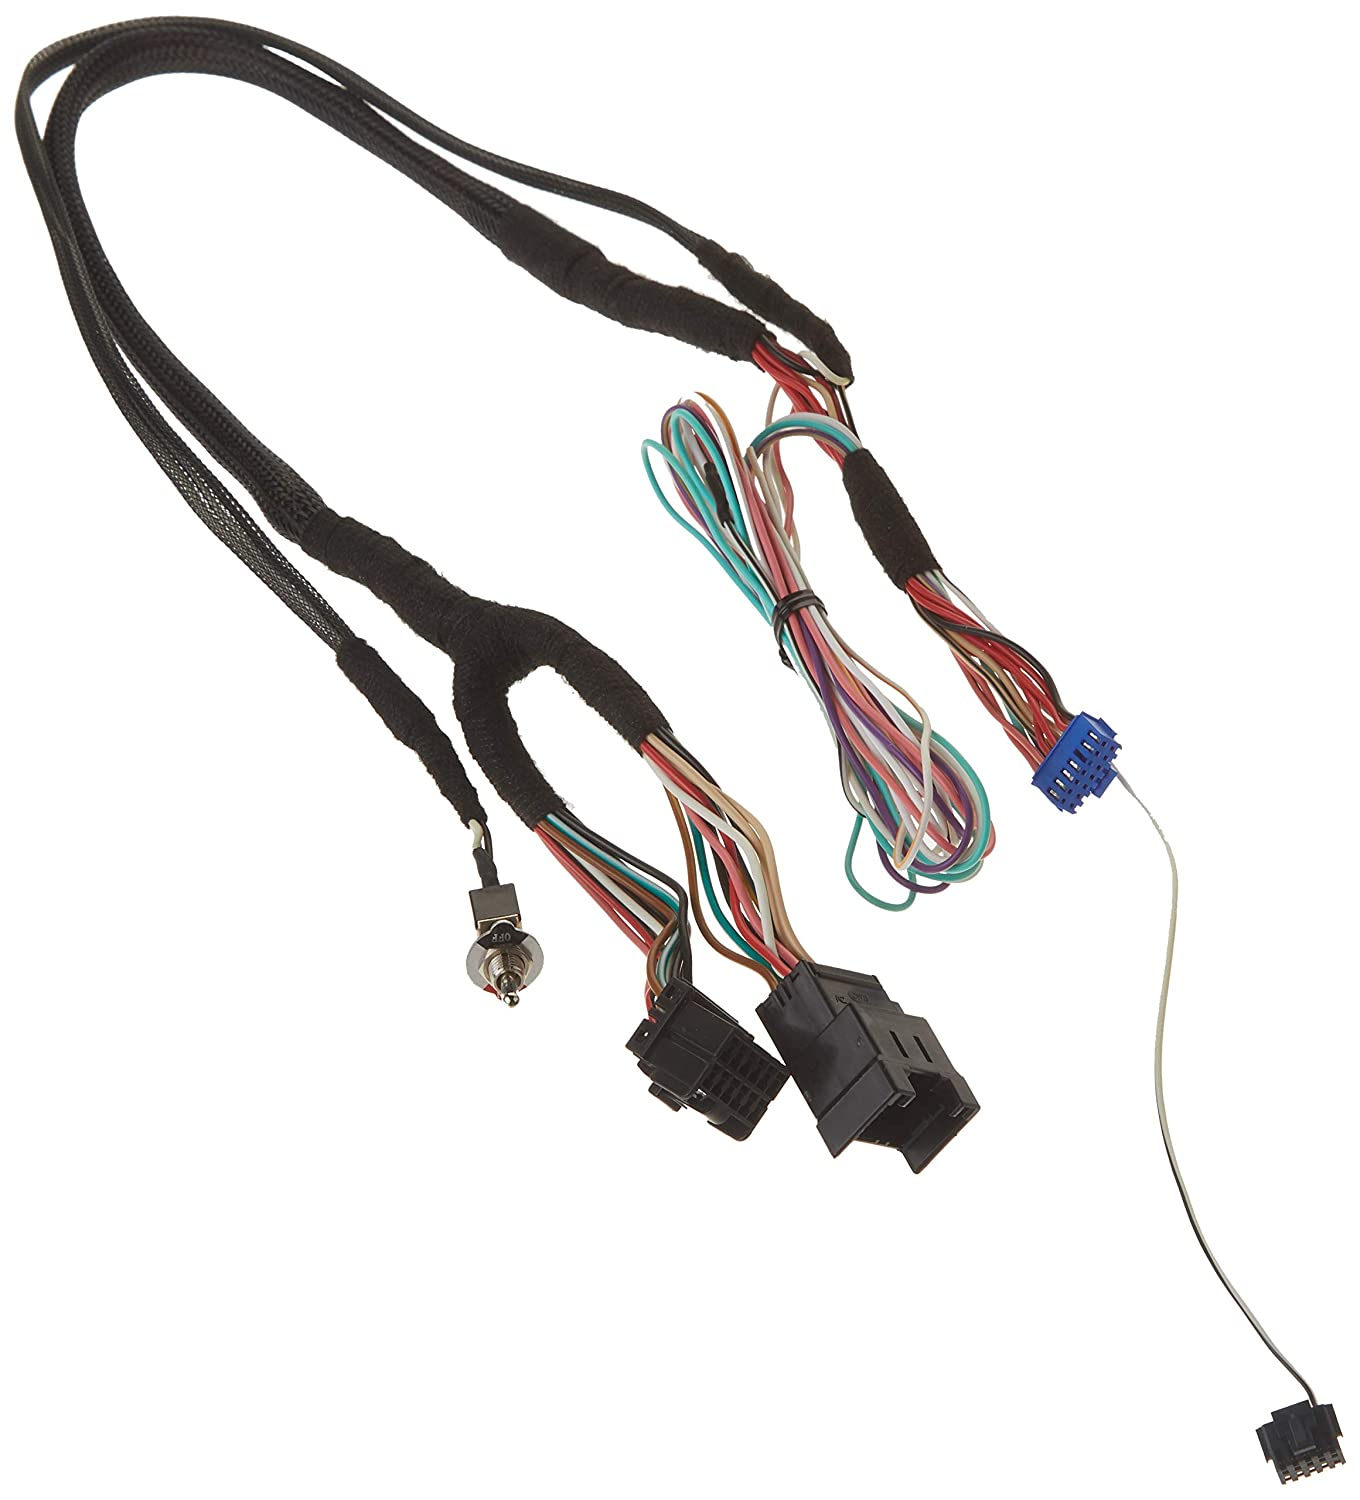 Directed Electronics CHTHD1 Chrysler CAN Style T Harness for ... on